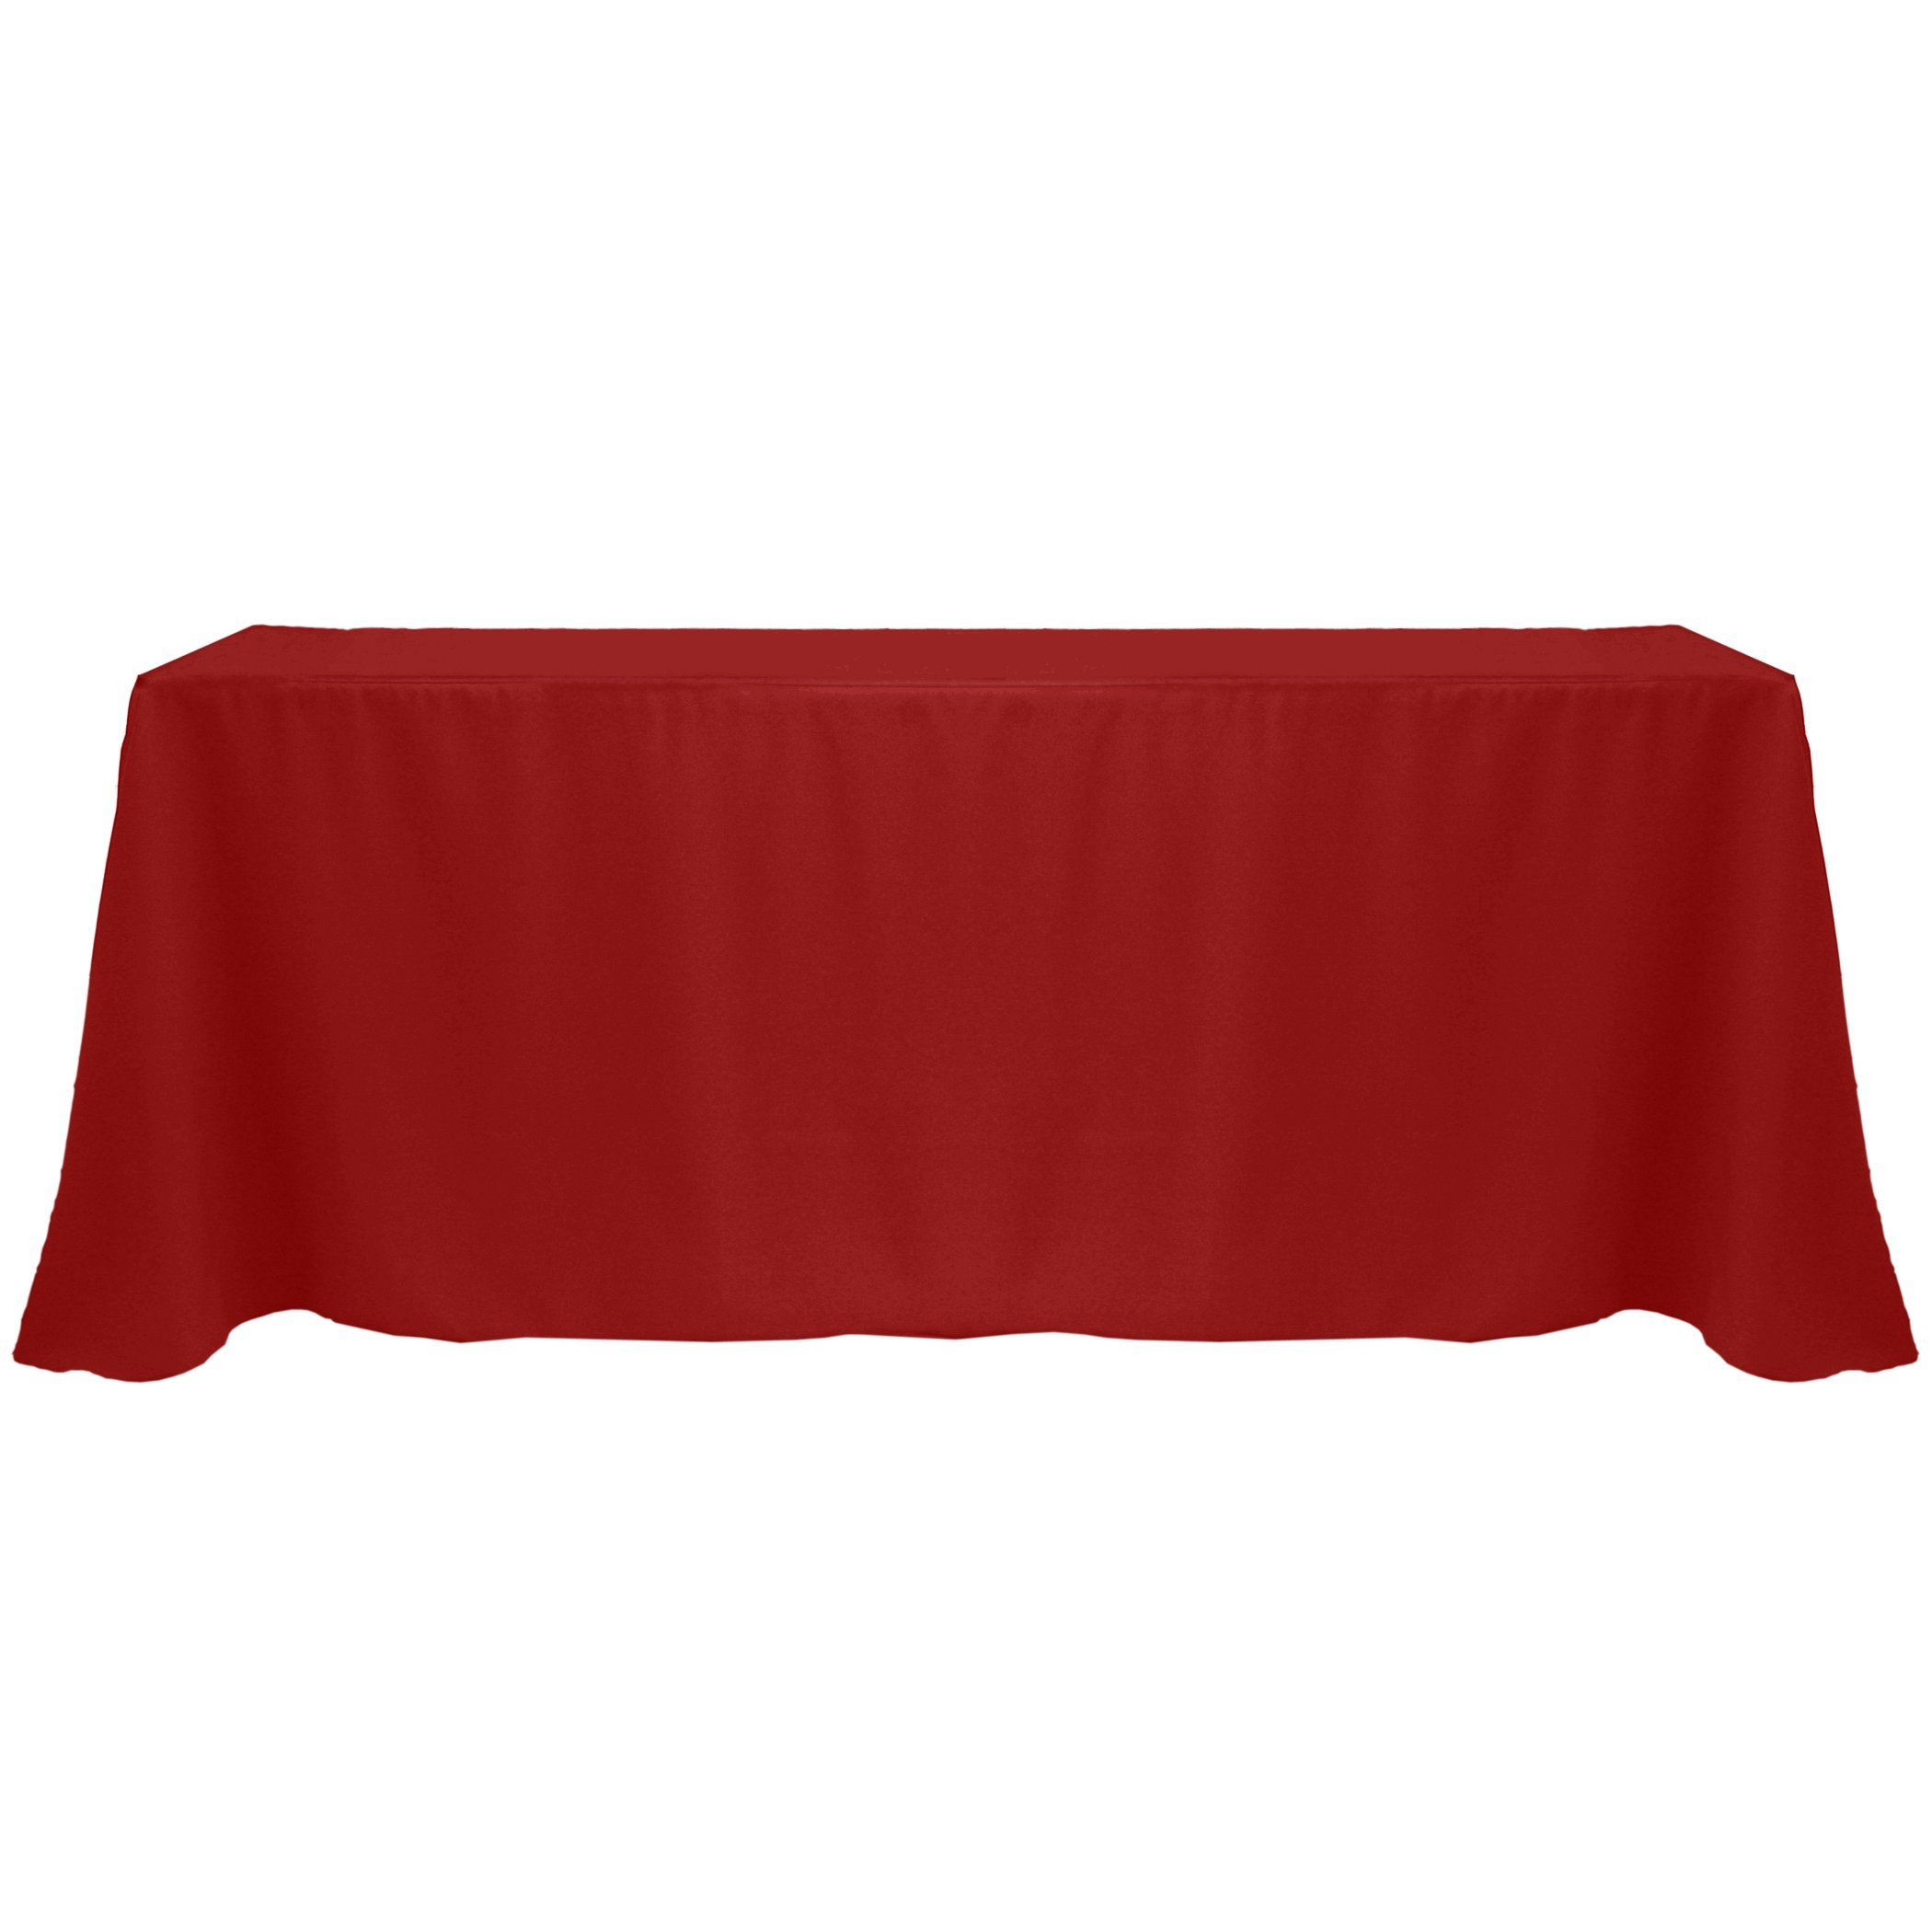 Ultimate Textile (5 Pack) 90 x 156-Inch Rectangular Polyester Linen Tablecloth with Rounded Corners - for Wedding, Restaurant or Banquet use, Cherry Red